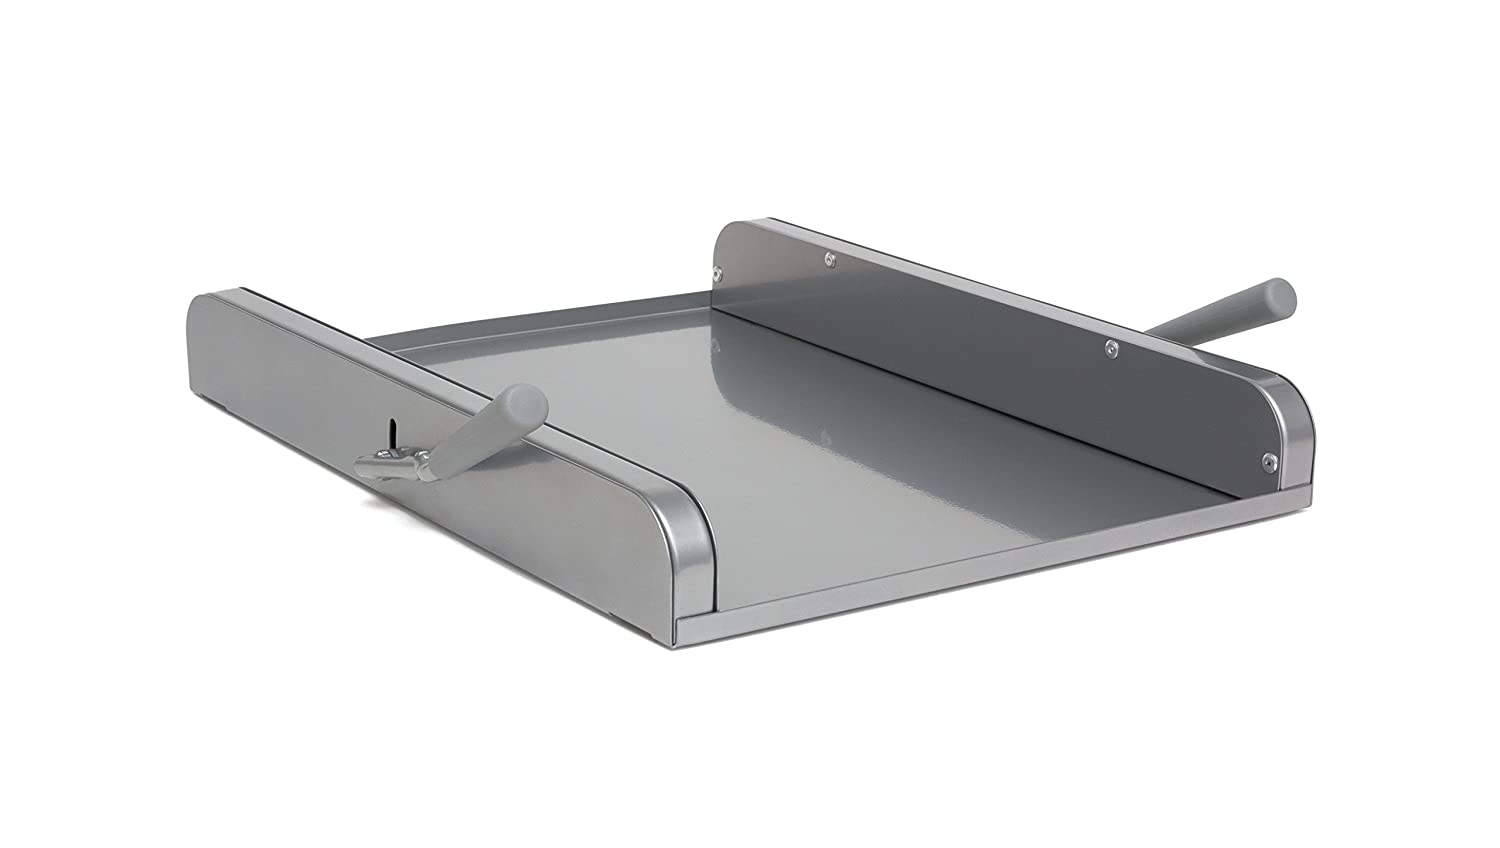 "Lipper International 8701G Rolling Platform for Mixers and Appliances, 15-3/4"" x 11-7/8"" x 2-1/8"", Grey"